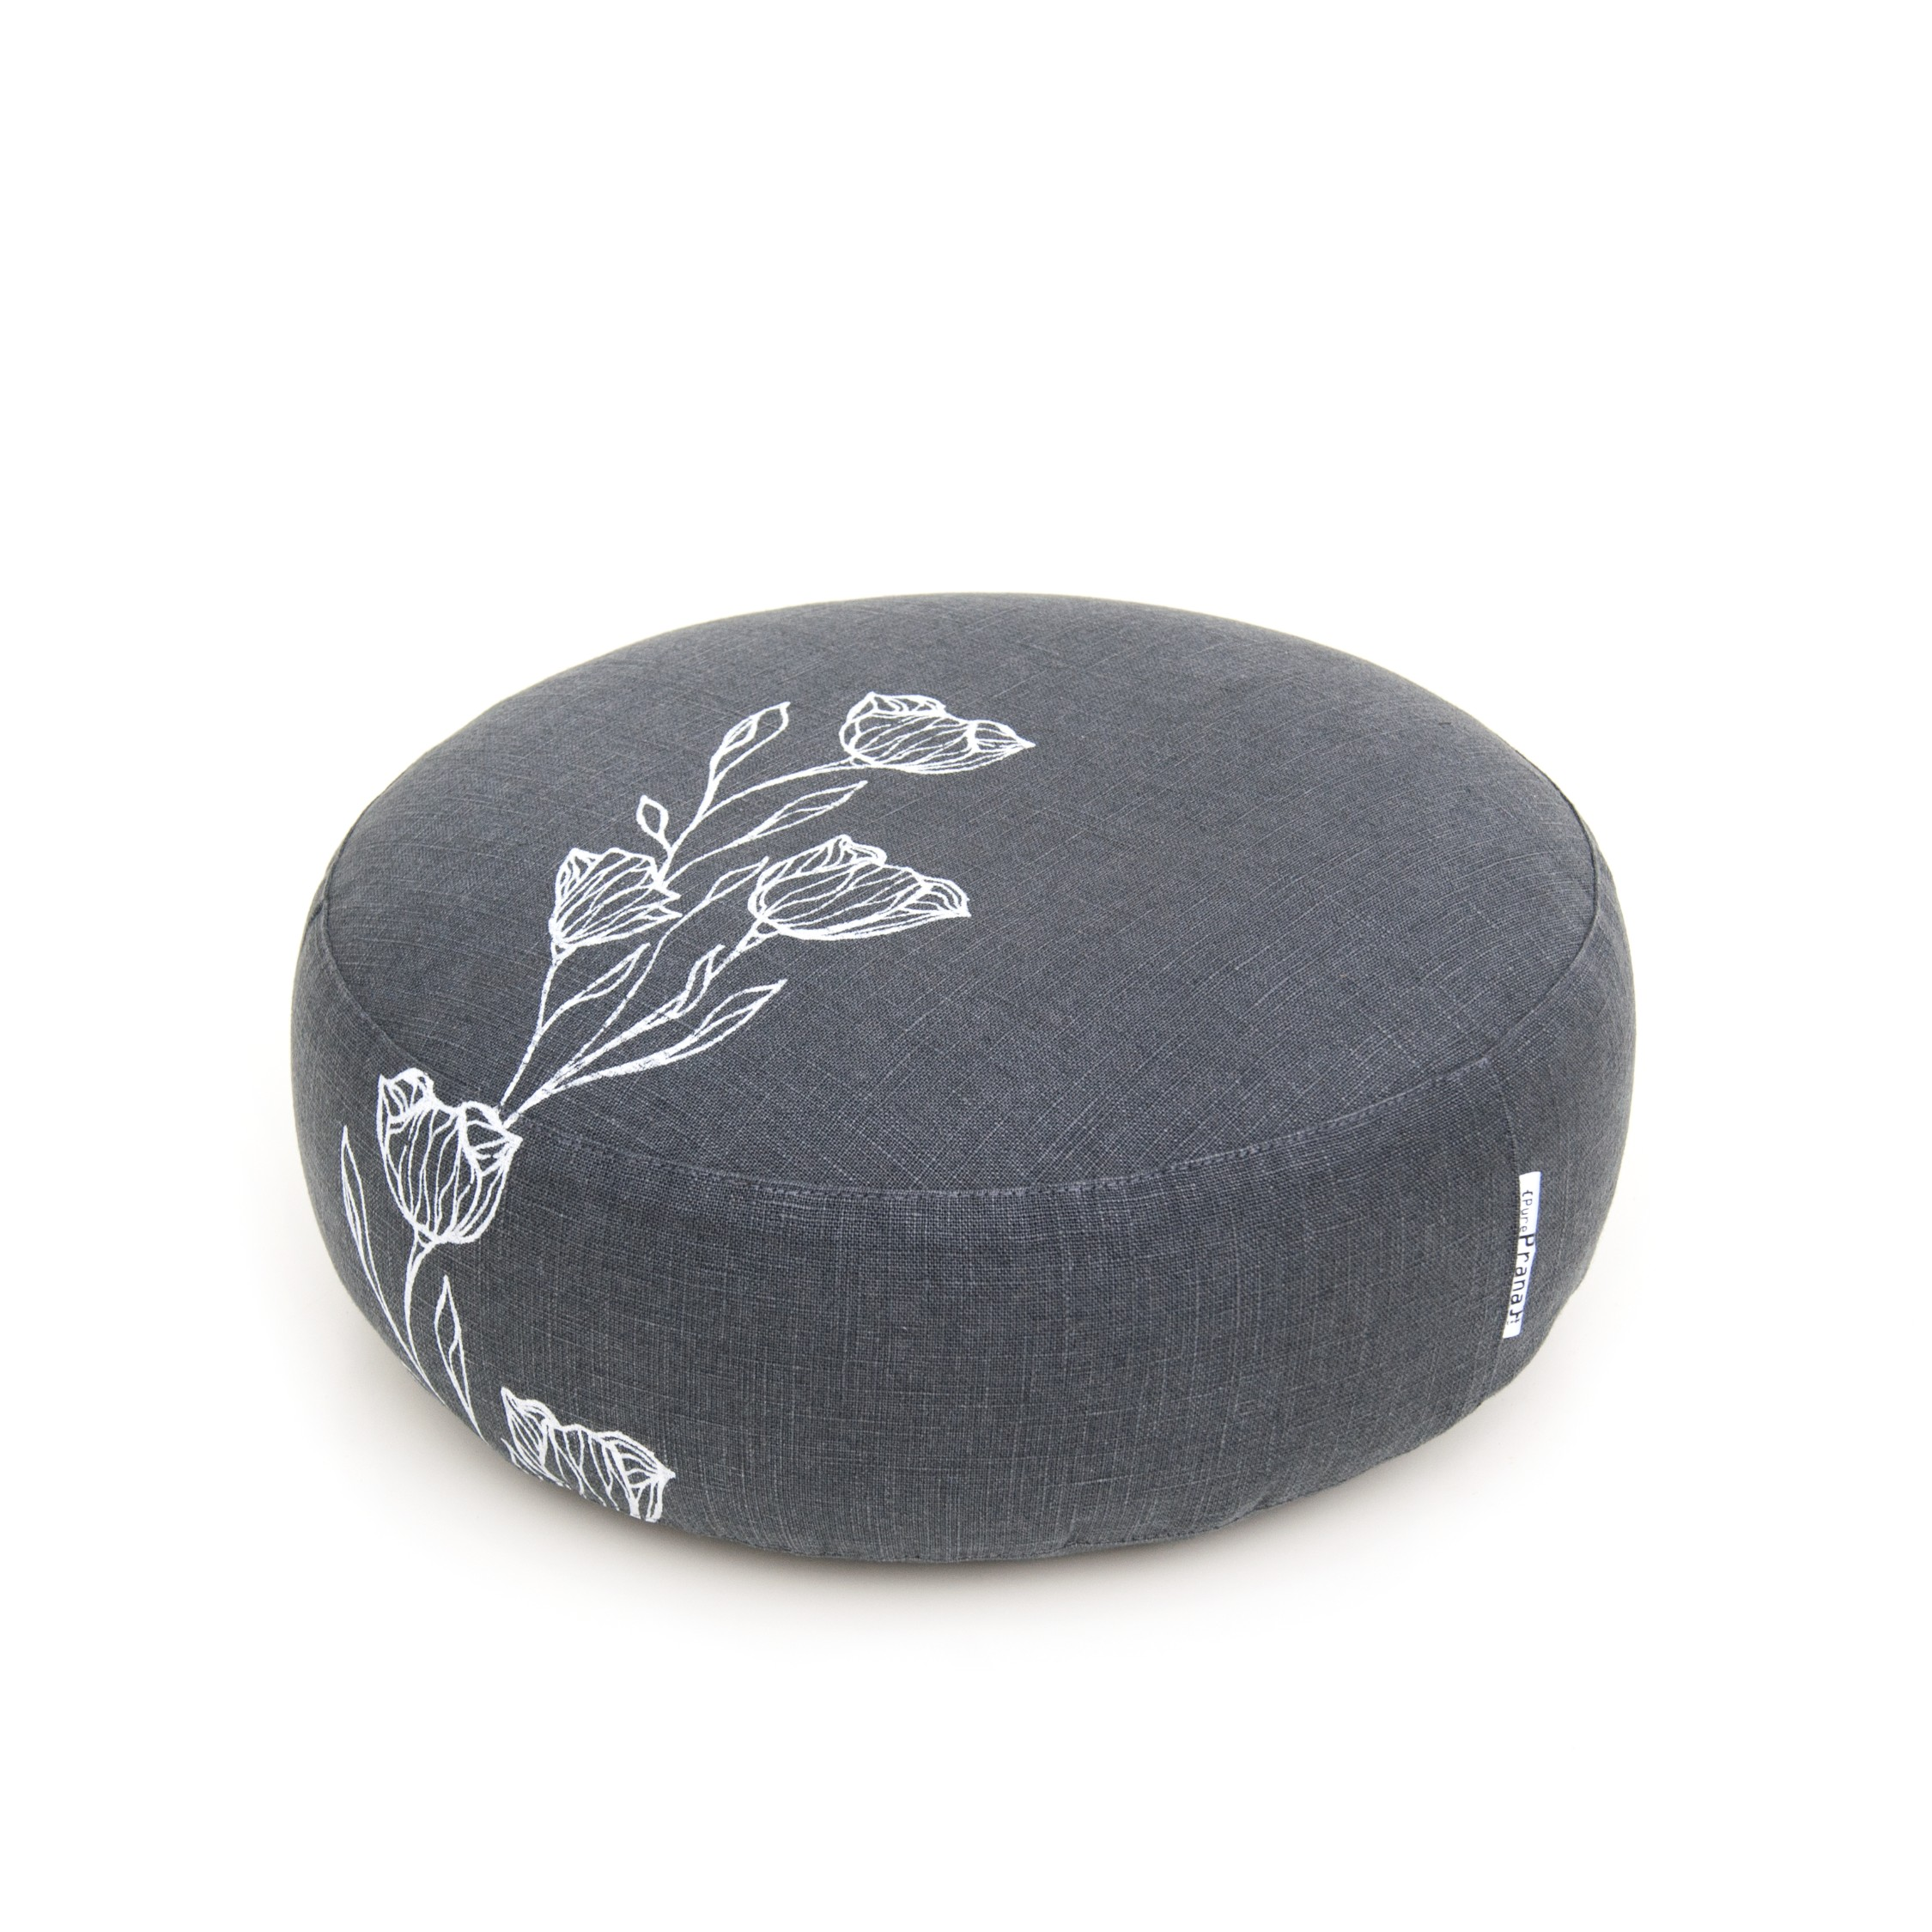 Floral meditation pillow by Pure Prana Label